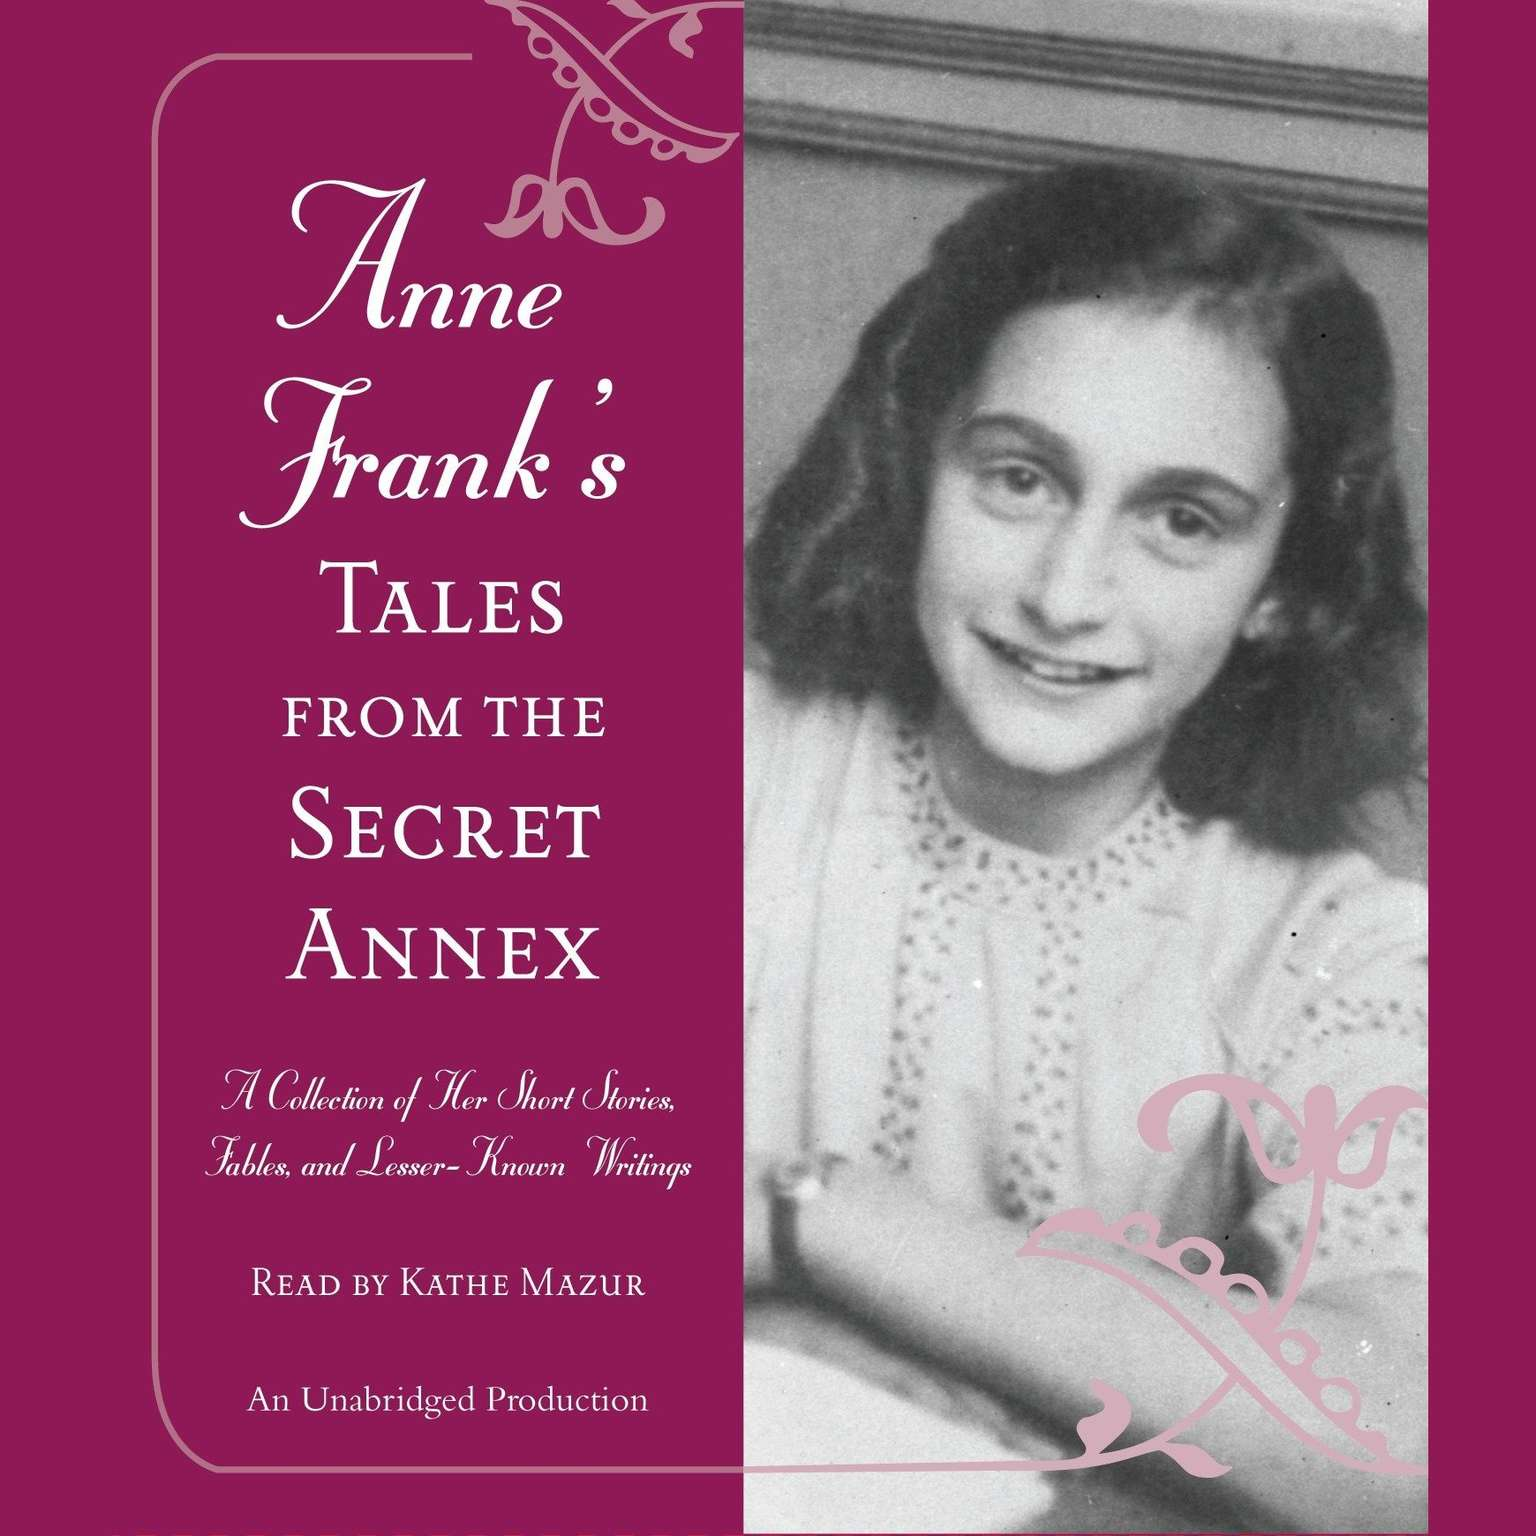 Printable Anne Frank's Tales from the Secret Annex: A Collection of Her Short Stories, Fables, and Lesser-Known Writings Audiobook Cover Art